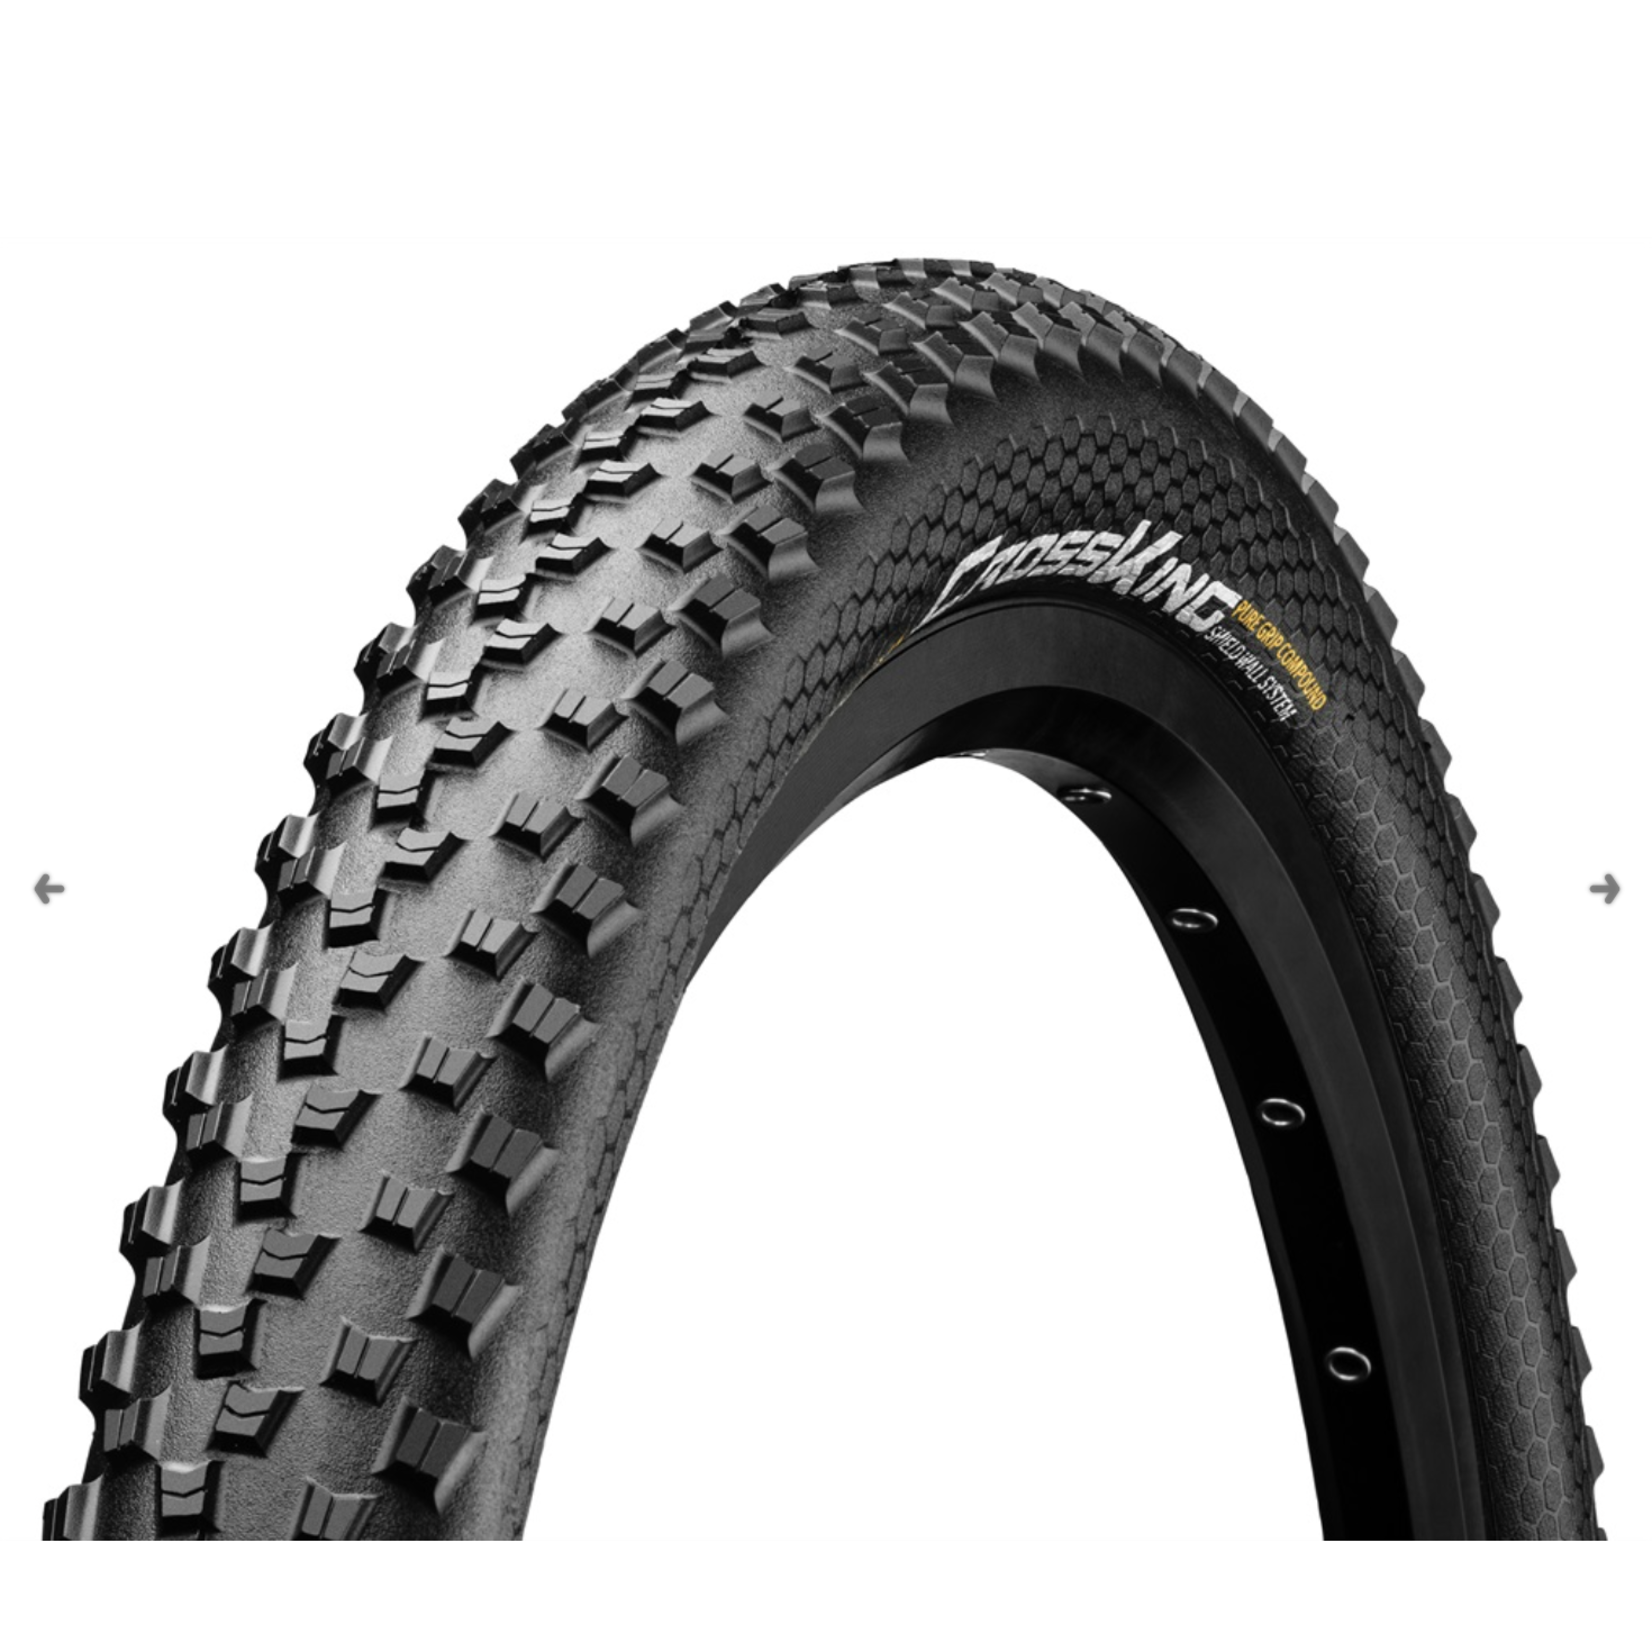 CONTINENTAL TIRES Continental XC/Enduro Tires Cross King 27.5 x 2.3 ShieldWall Folding BW